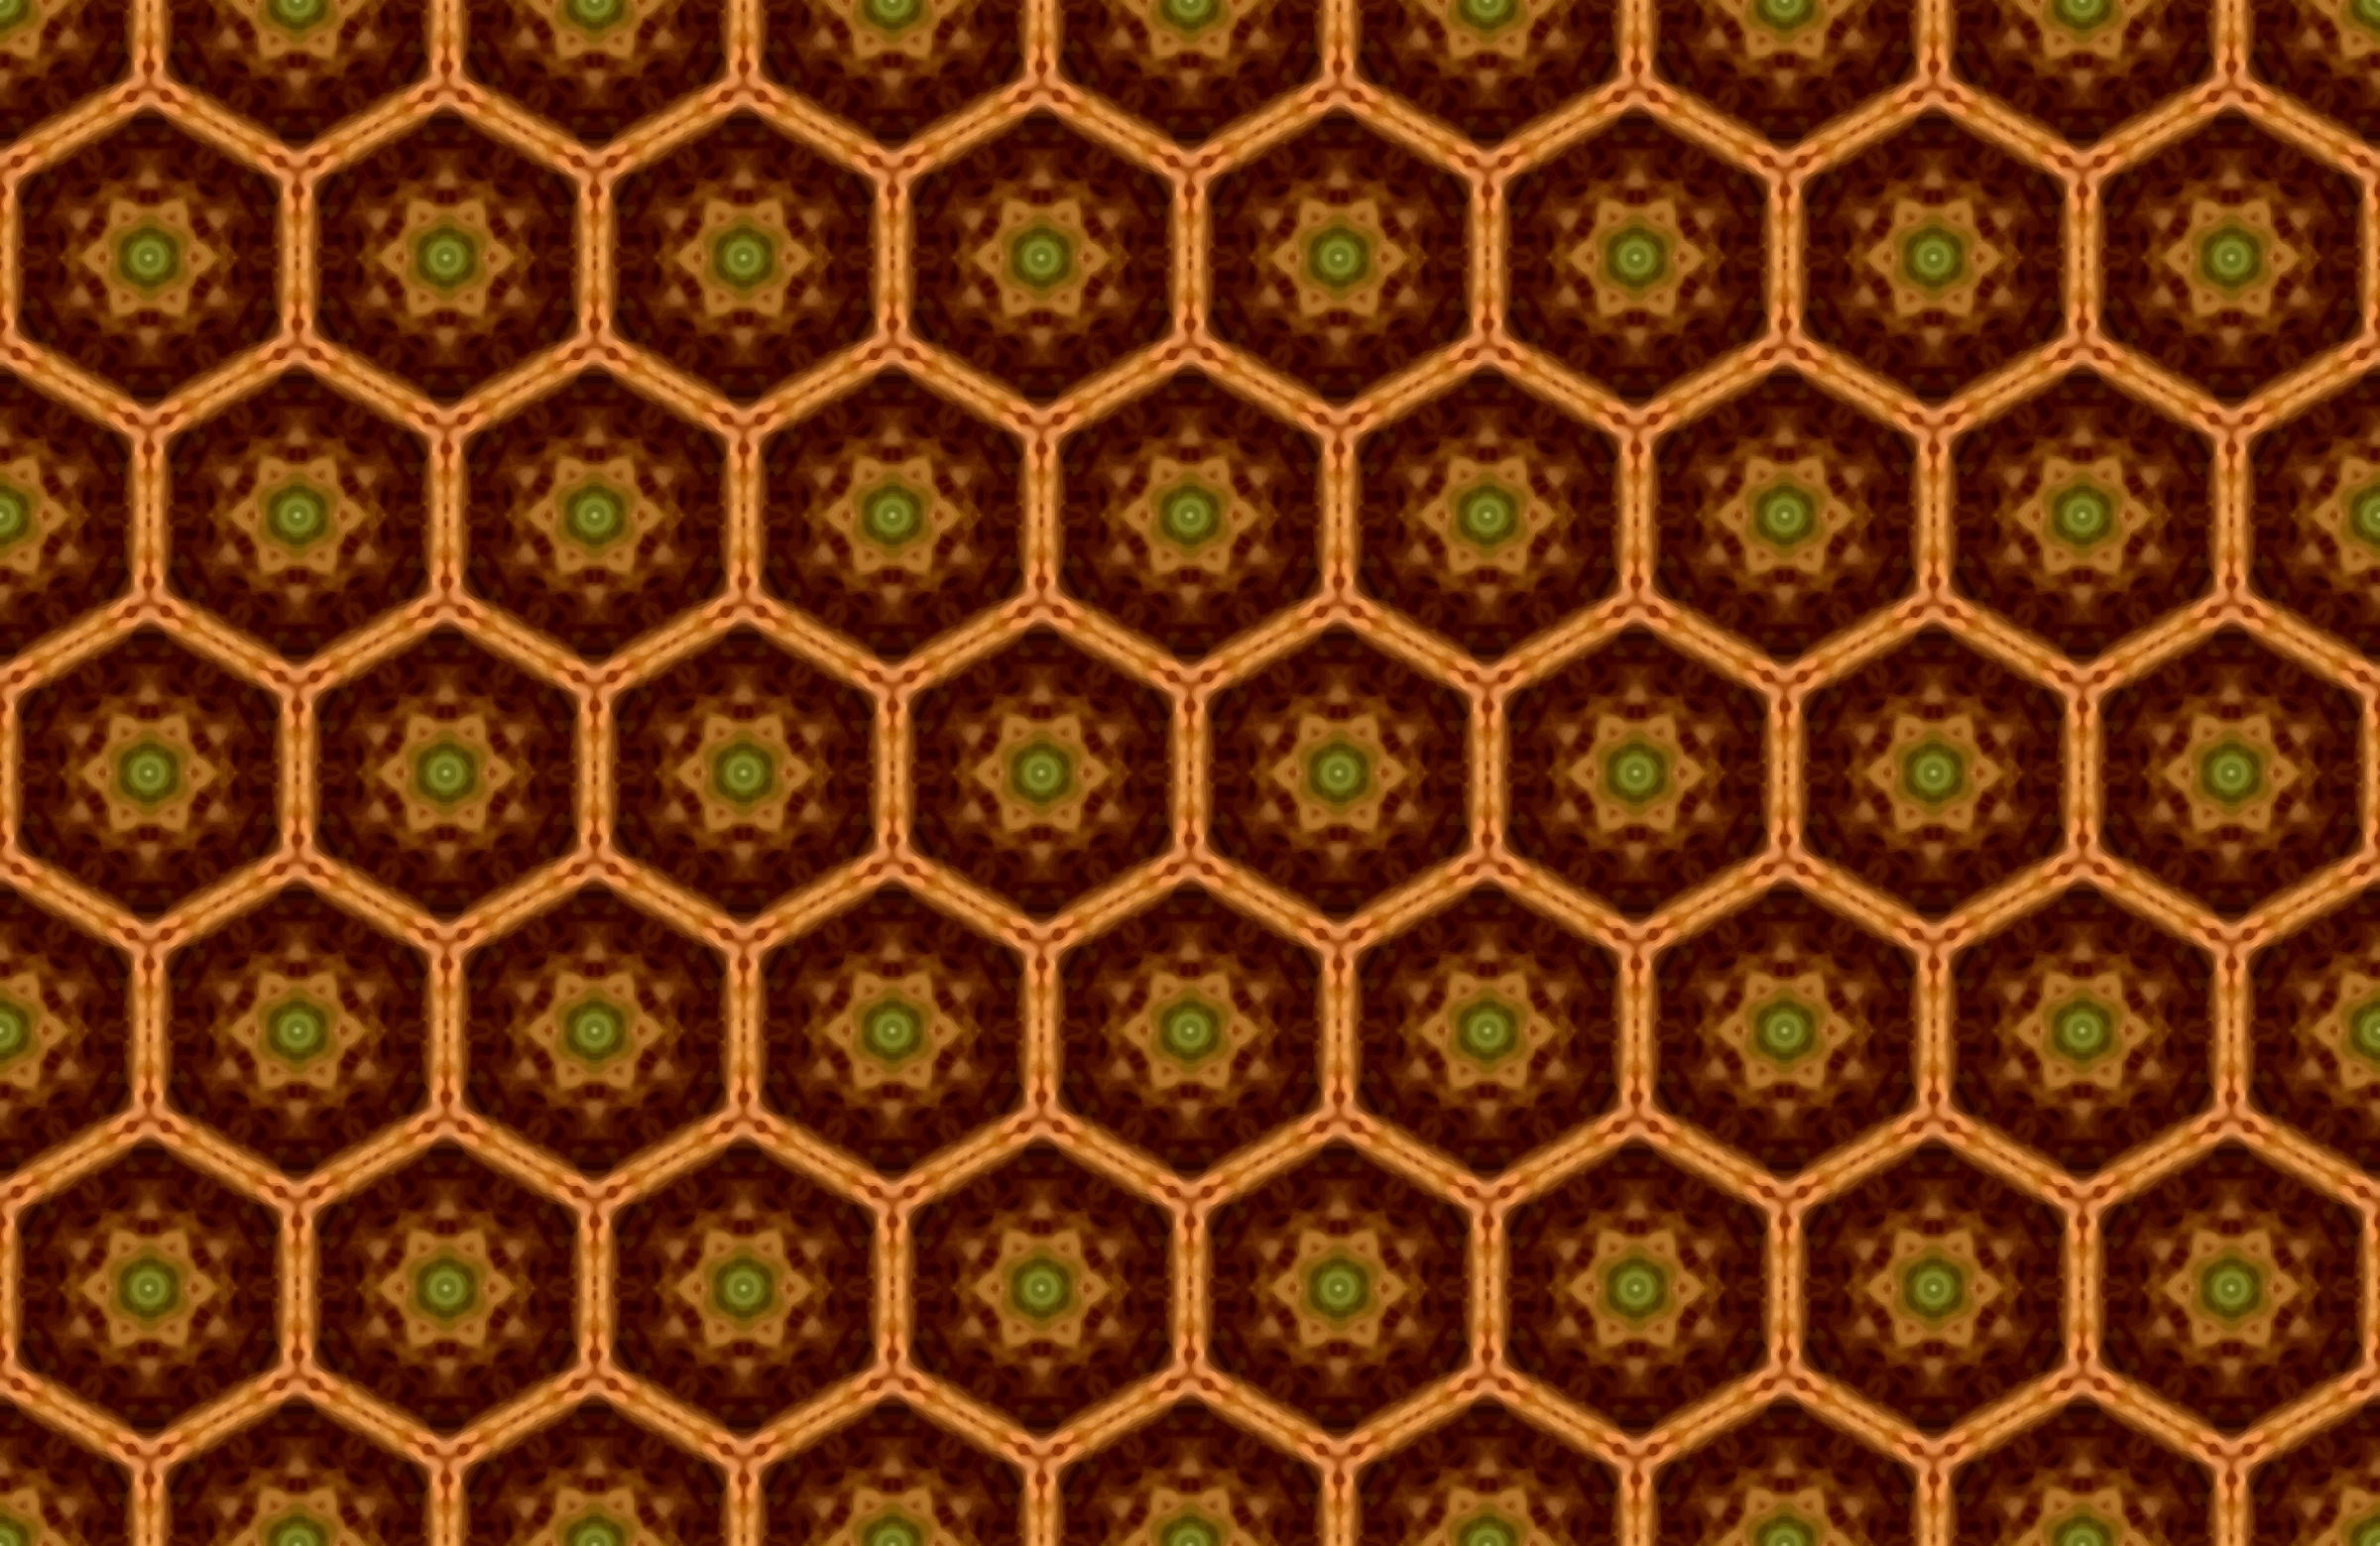 Background pattern 183 by Firkin